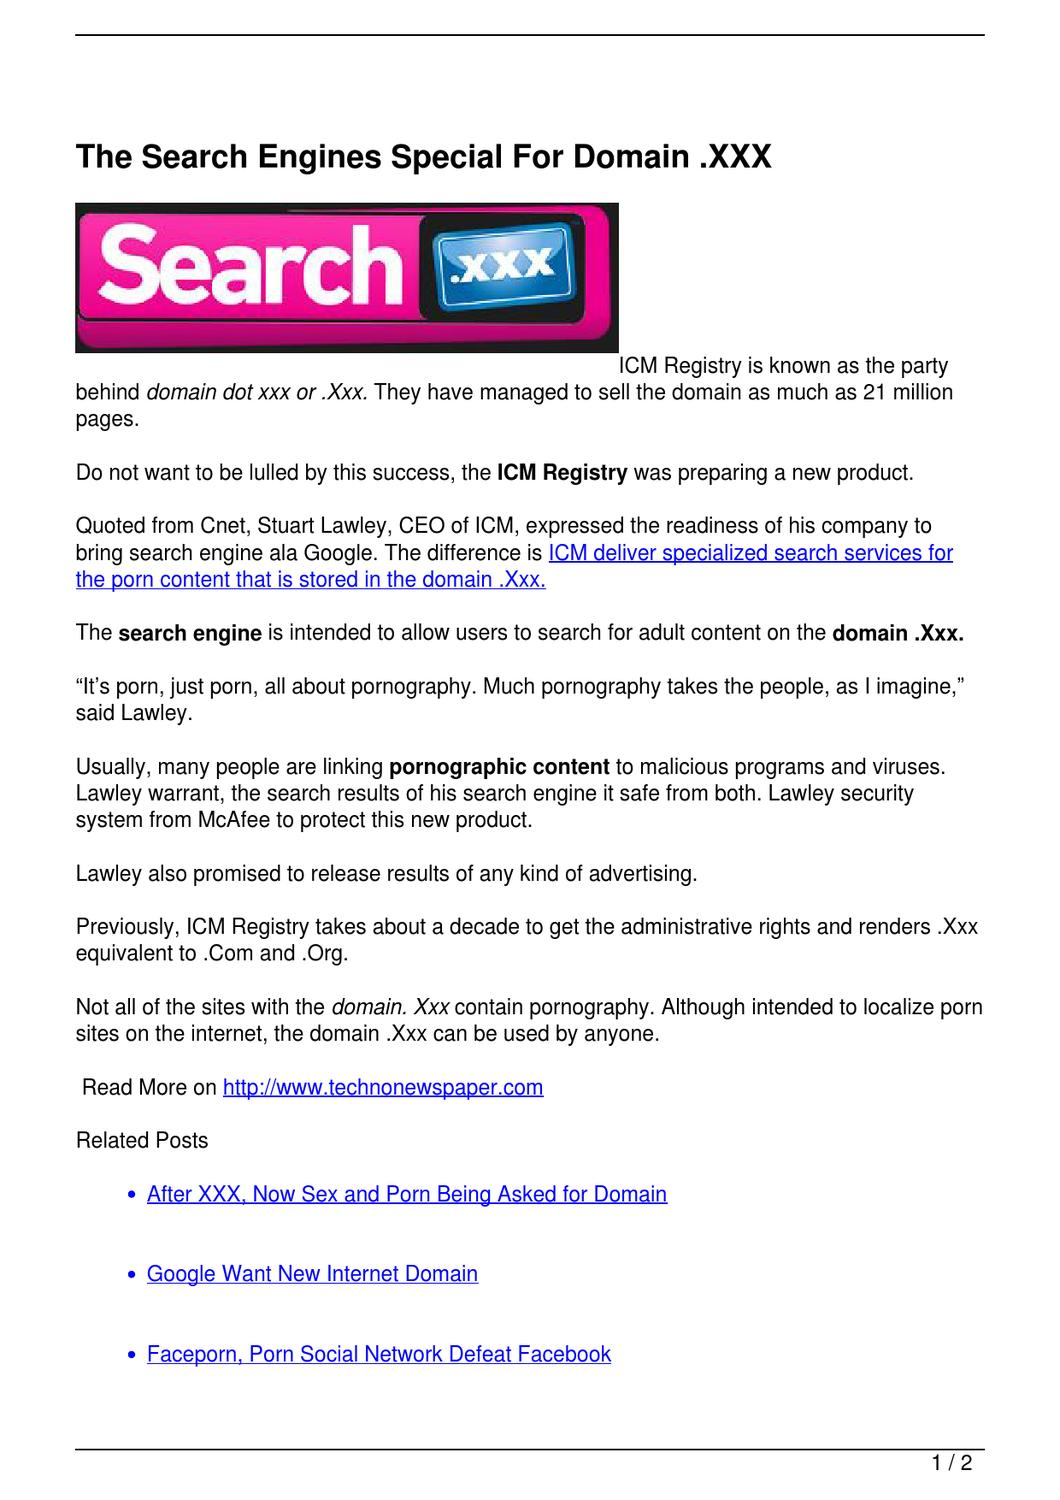 The Search Engines Special For Domain .XXX